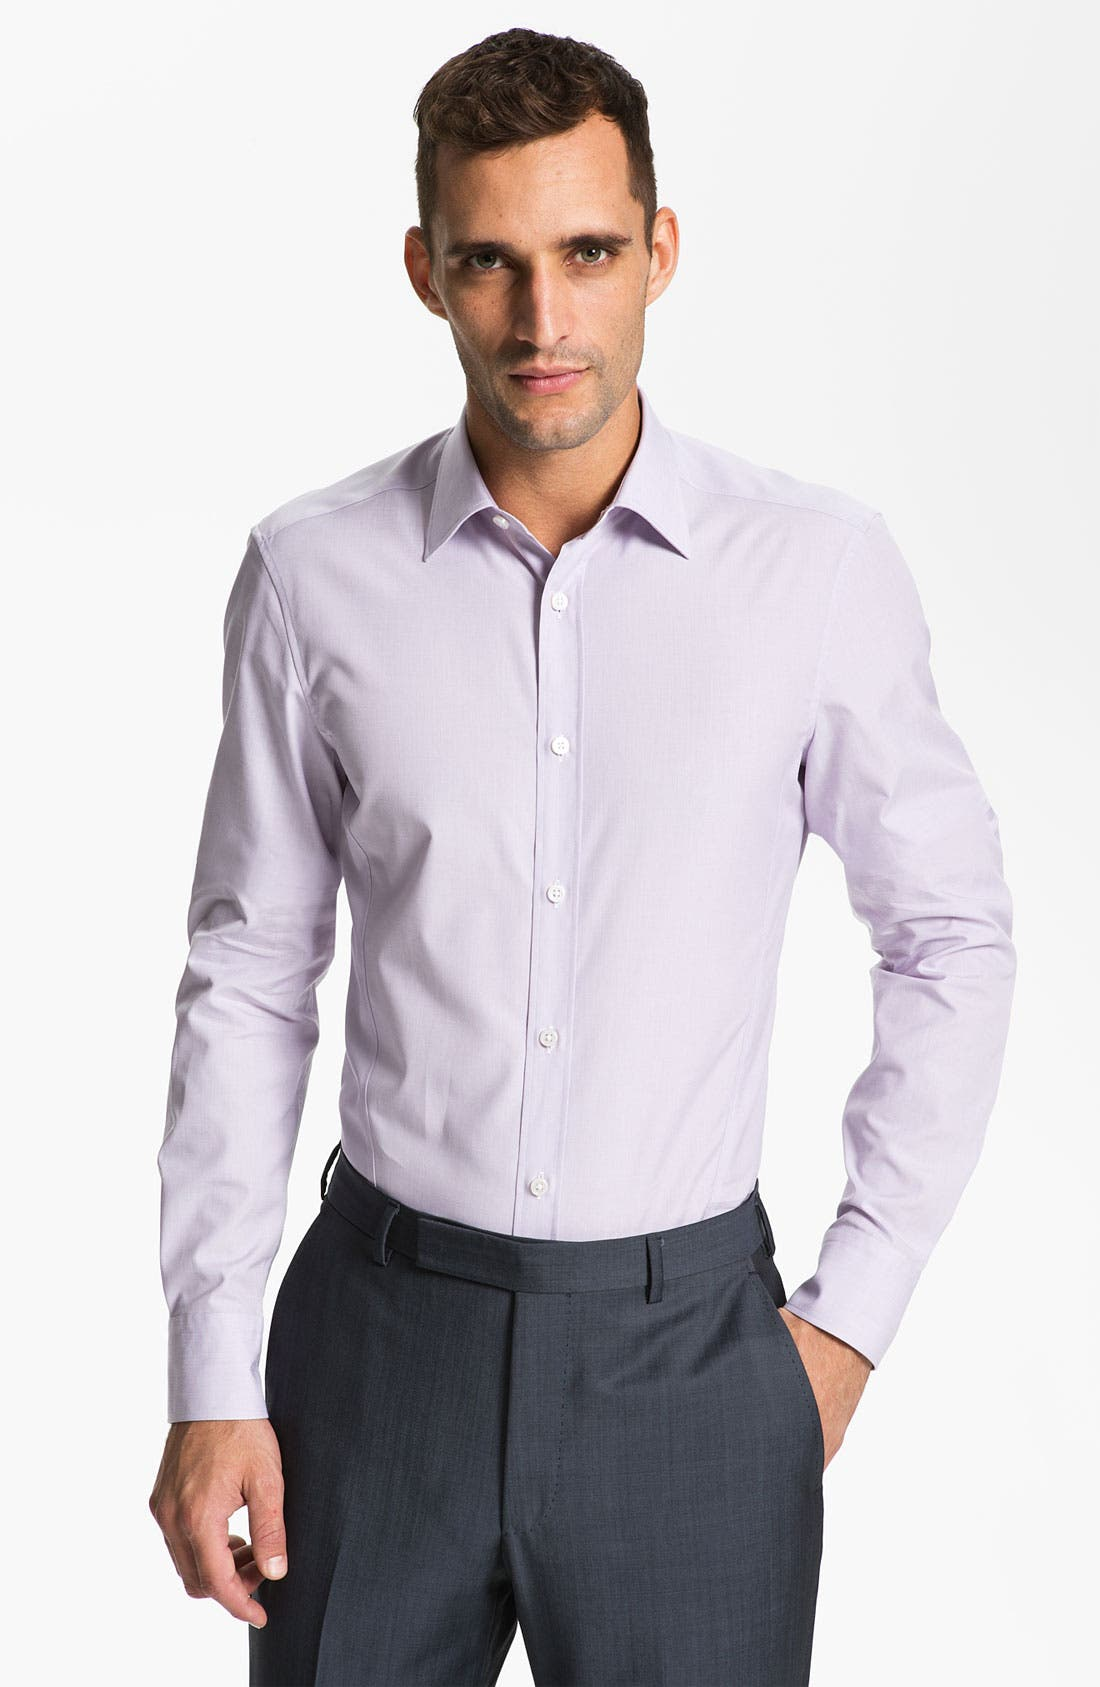 Alternate Image 1 Selected - Z Zegna Extra Trim Fit Dress Shirt